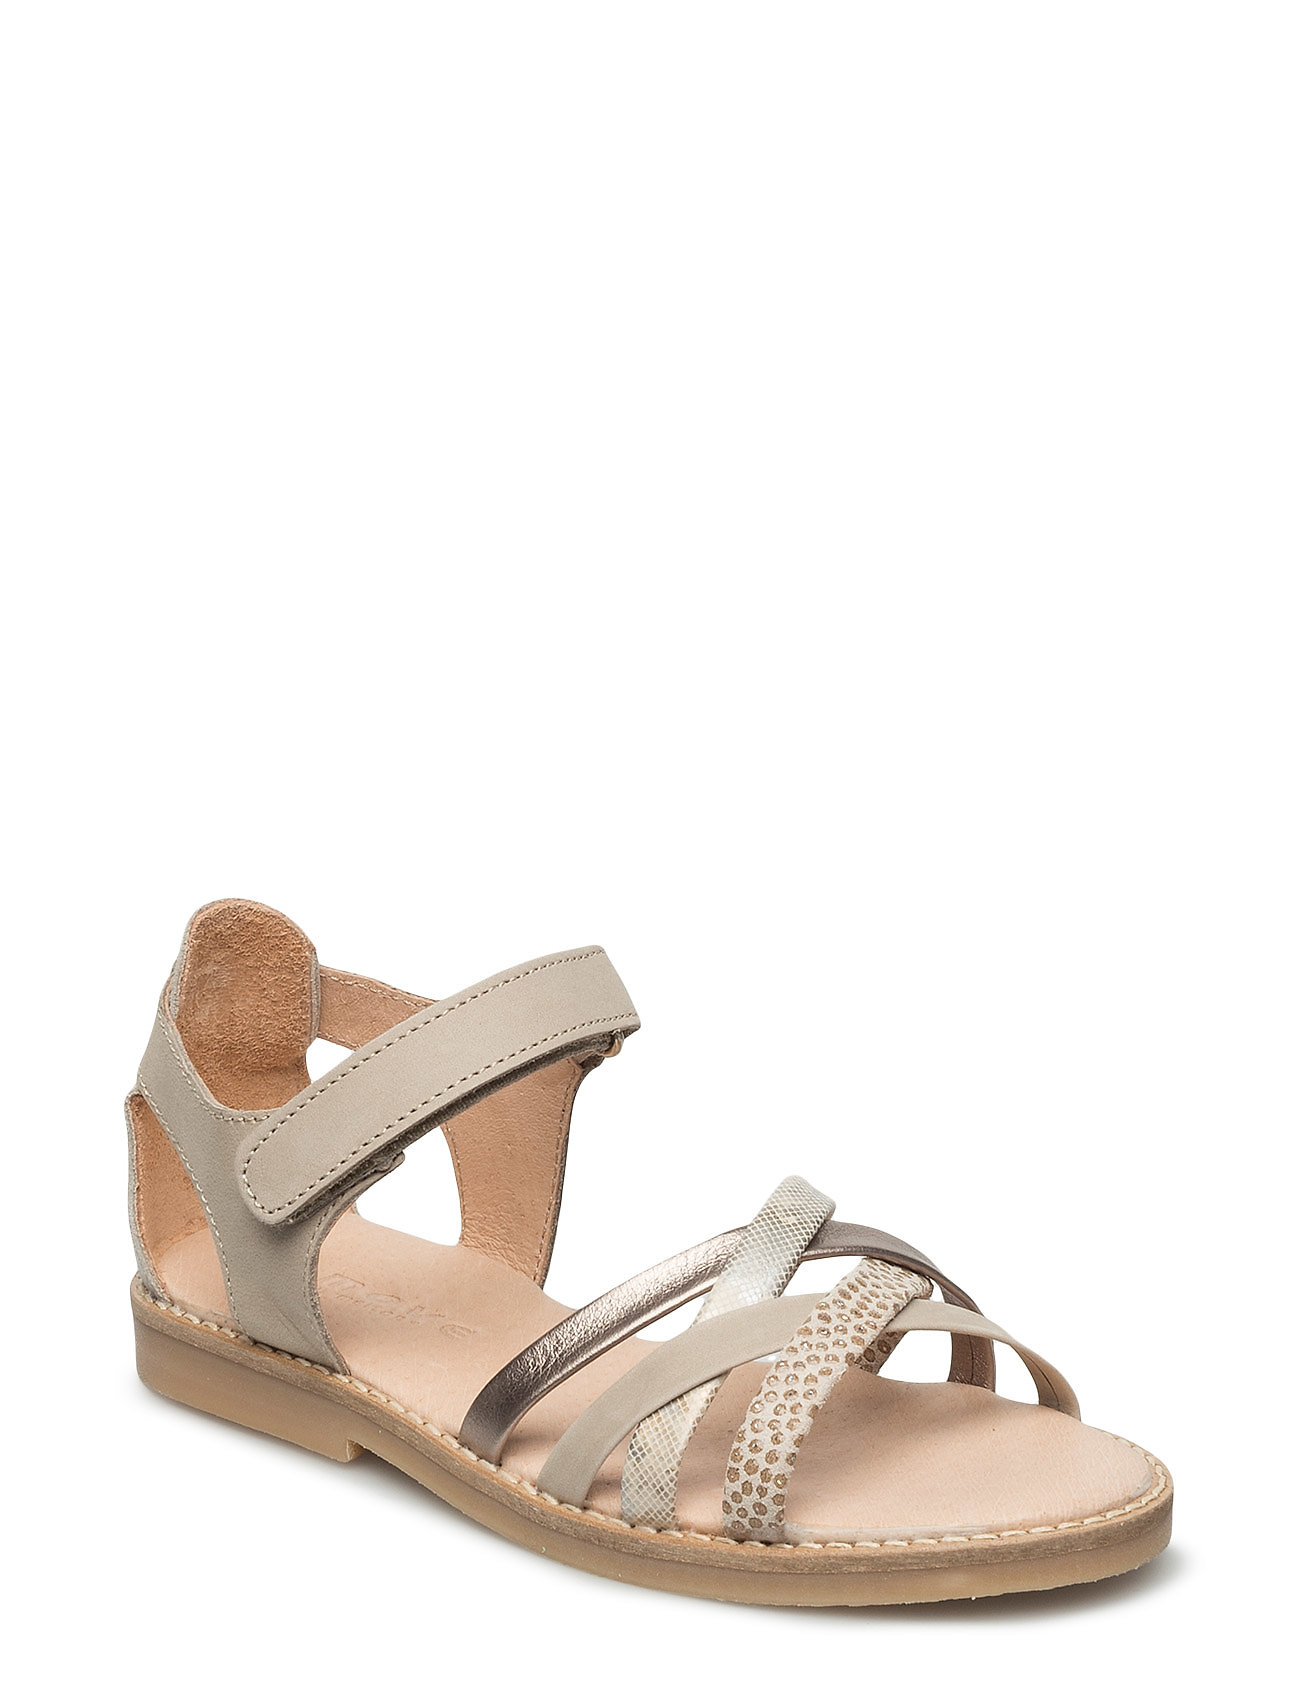 Girls Strap Sandal Move by Melton Sandaler til Børn i